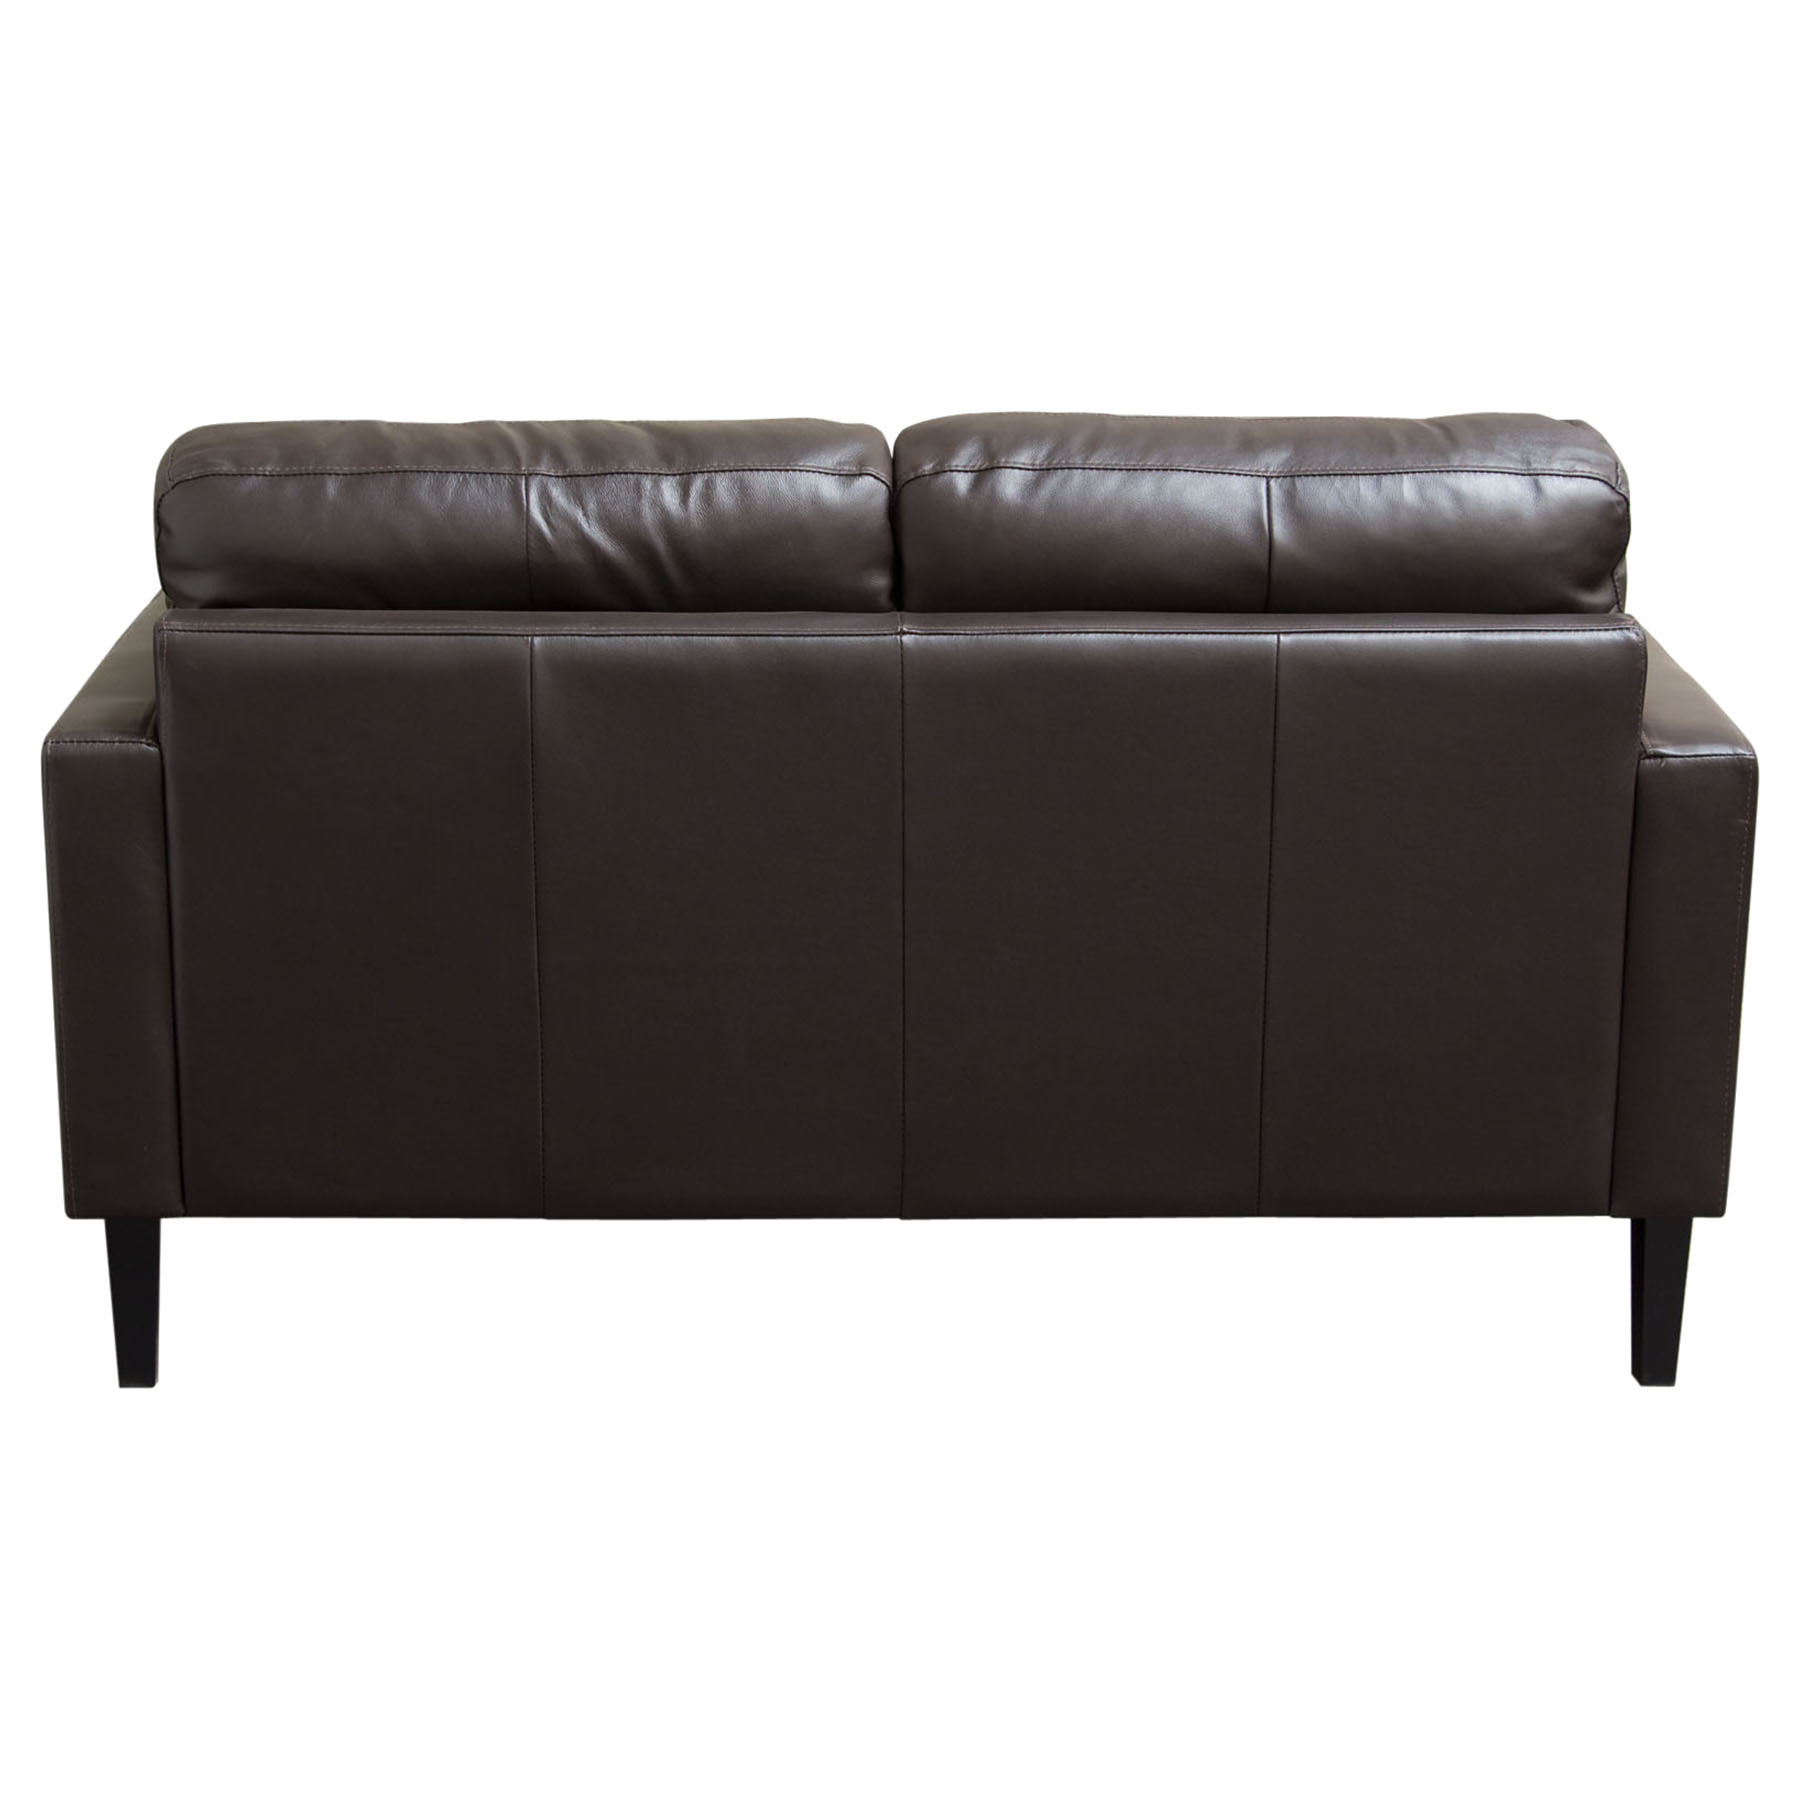 tosh furniture dark brown sofa set seats and sofas eindhoven adres omega 2 pieces full leather chocolate